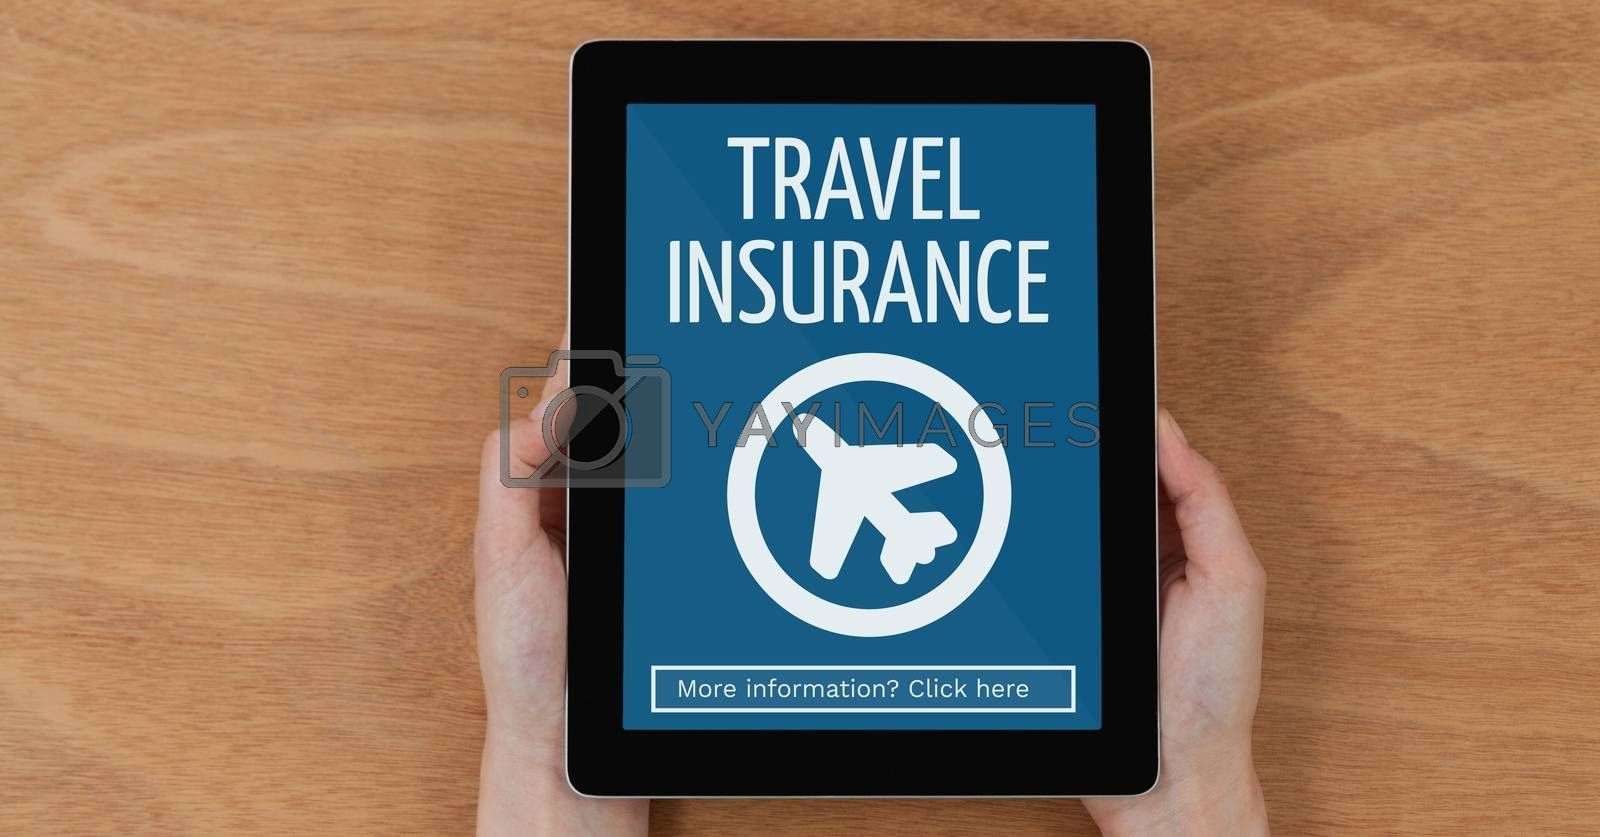 Person holding a tablet with travel insurance concept on screen by Wavebreakmedia